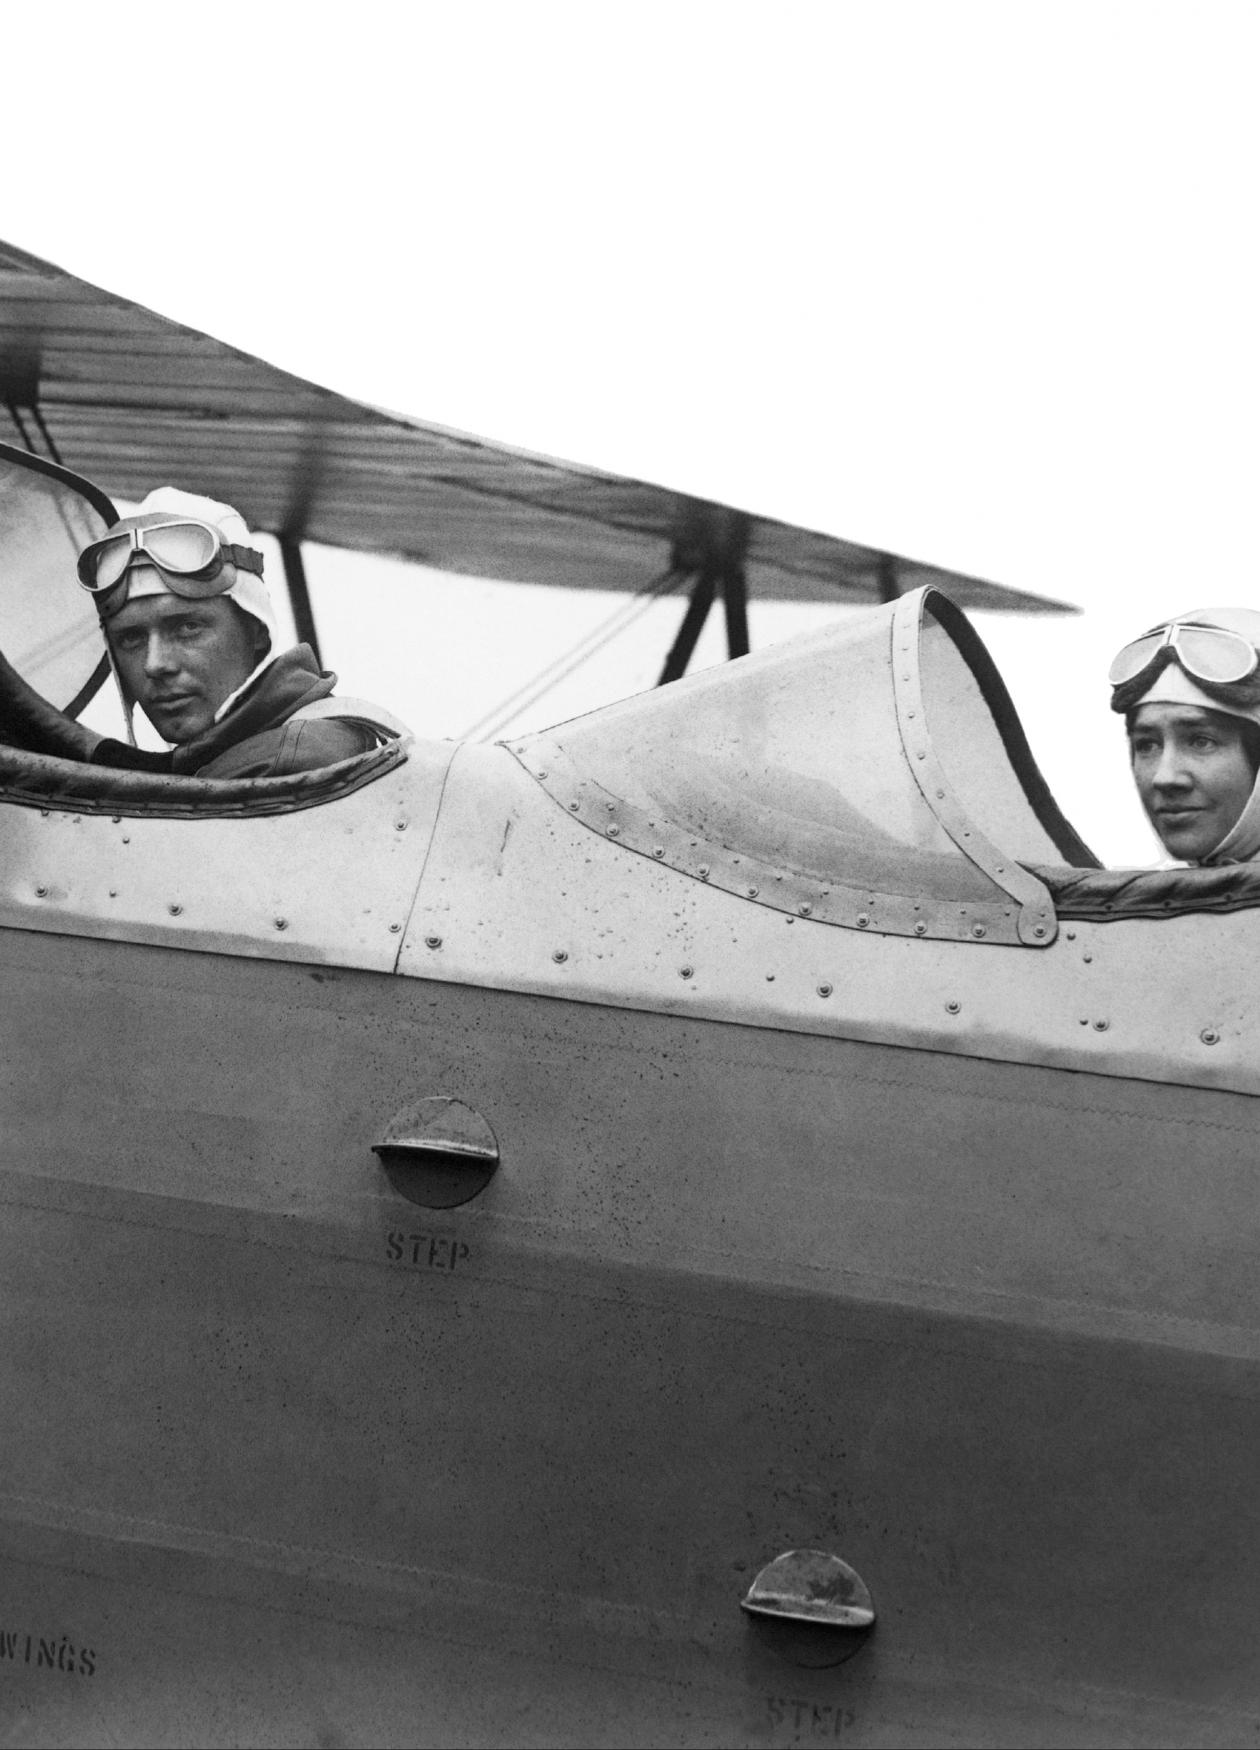 Black and white photo of the Lindbergh brothers in an airplane with an open cockpit.